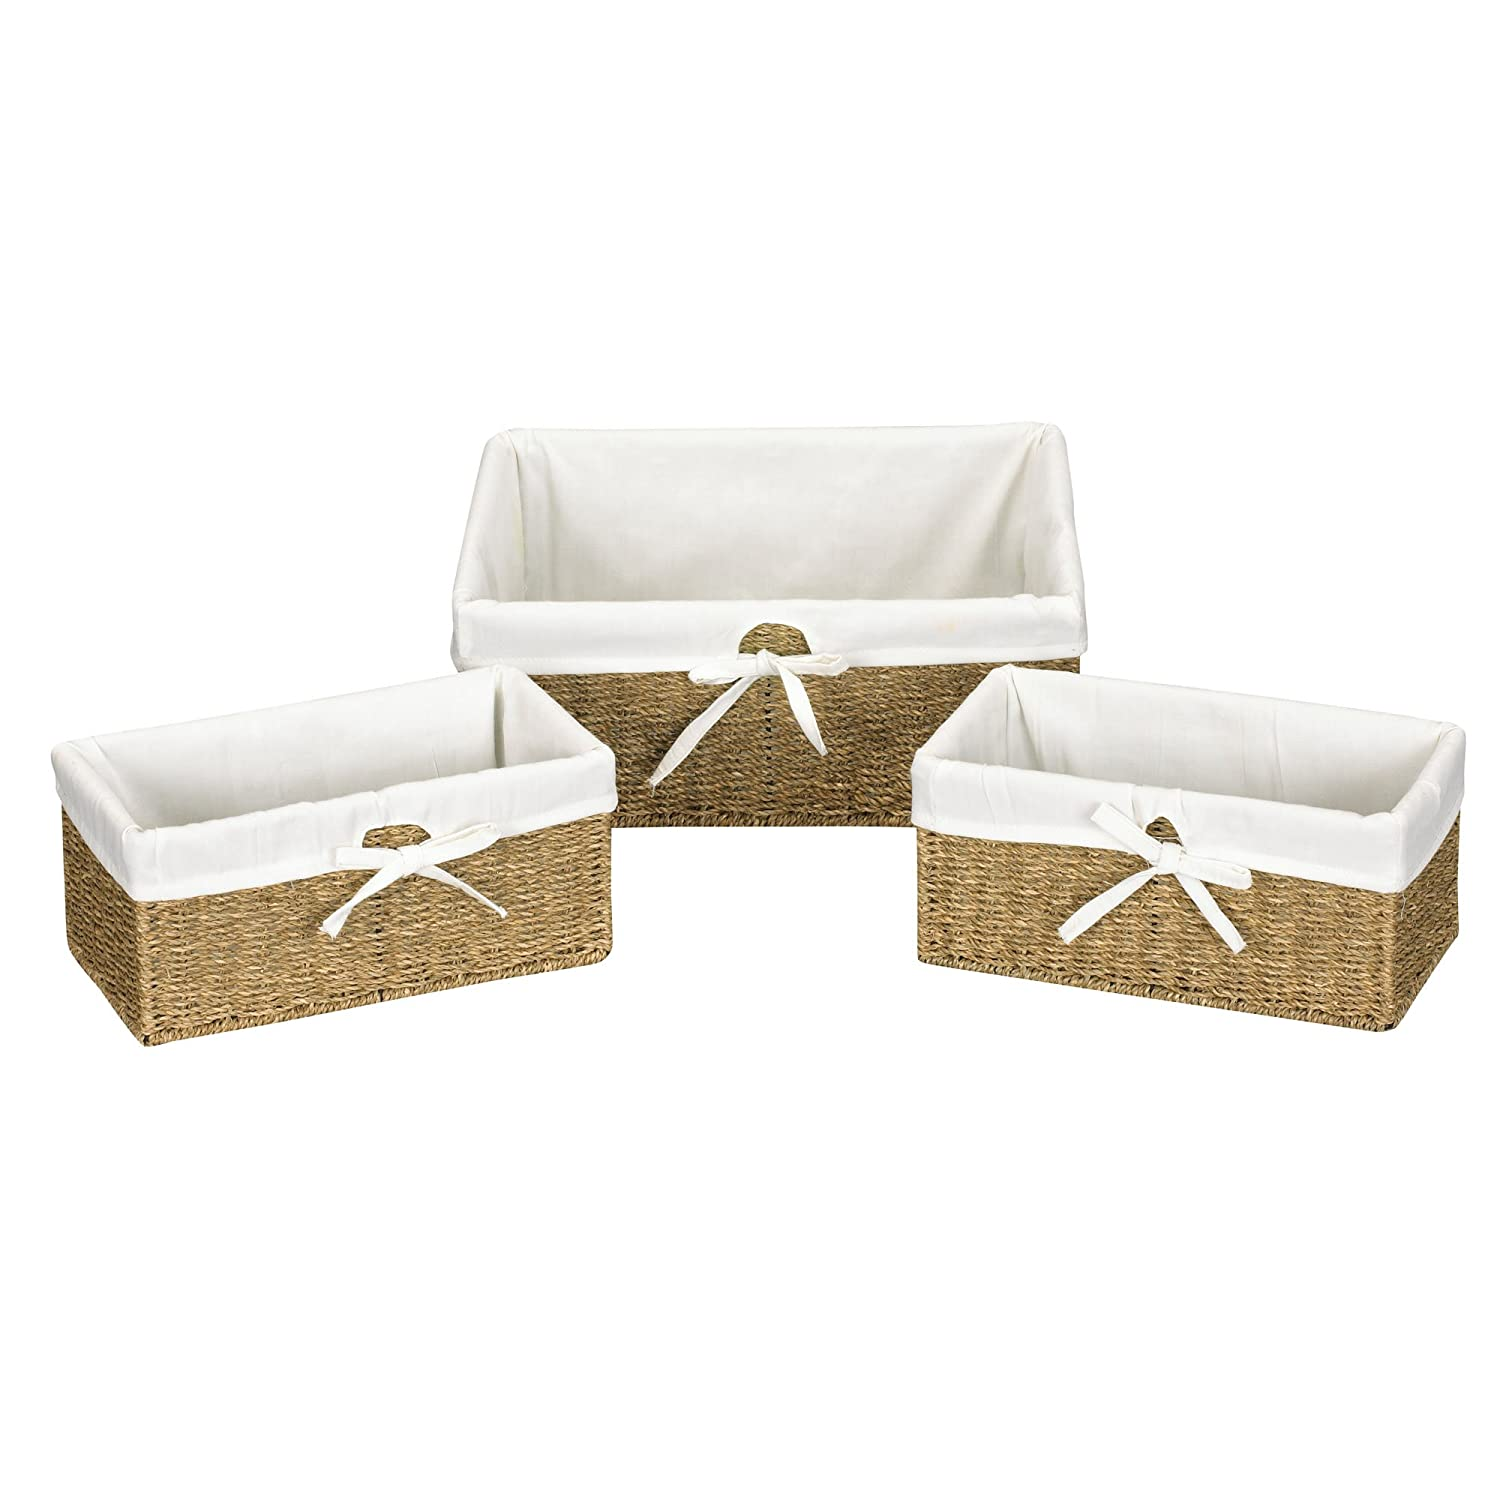 Delicieux Amazon.com: Household Essentials ML 5611 Set Of Three Woven Wicker Storage  Baskets With Removable Liners | Natural Seagrass: Kitchen U0026 Dining